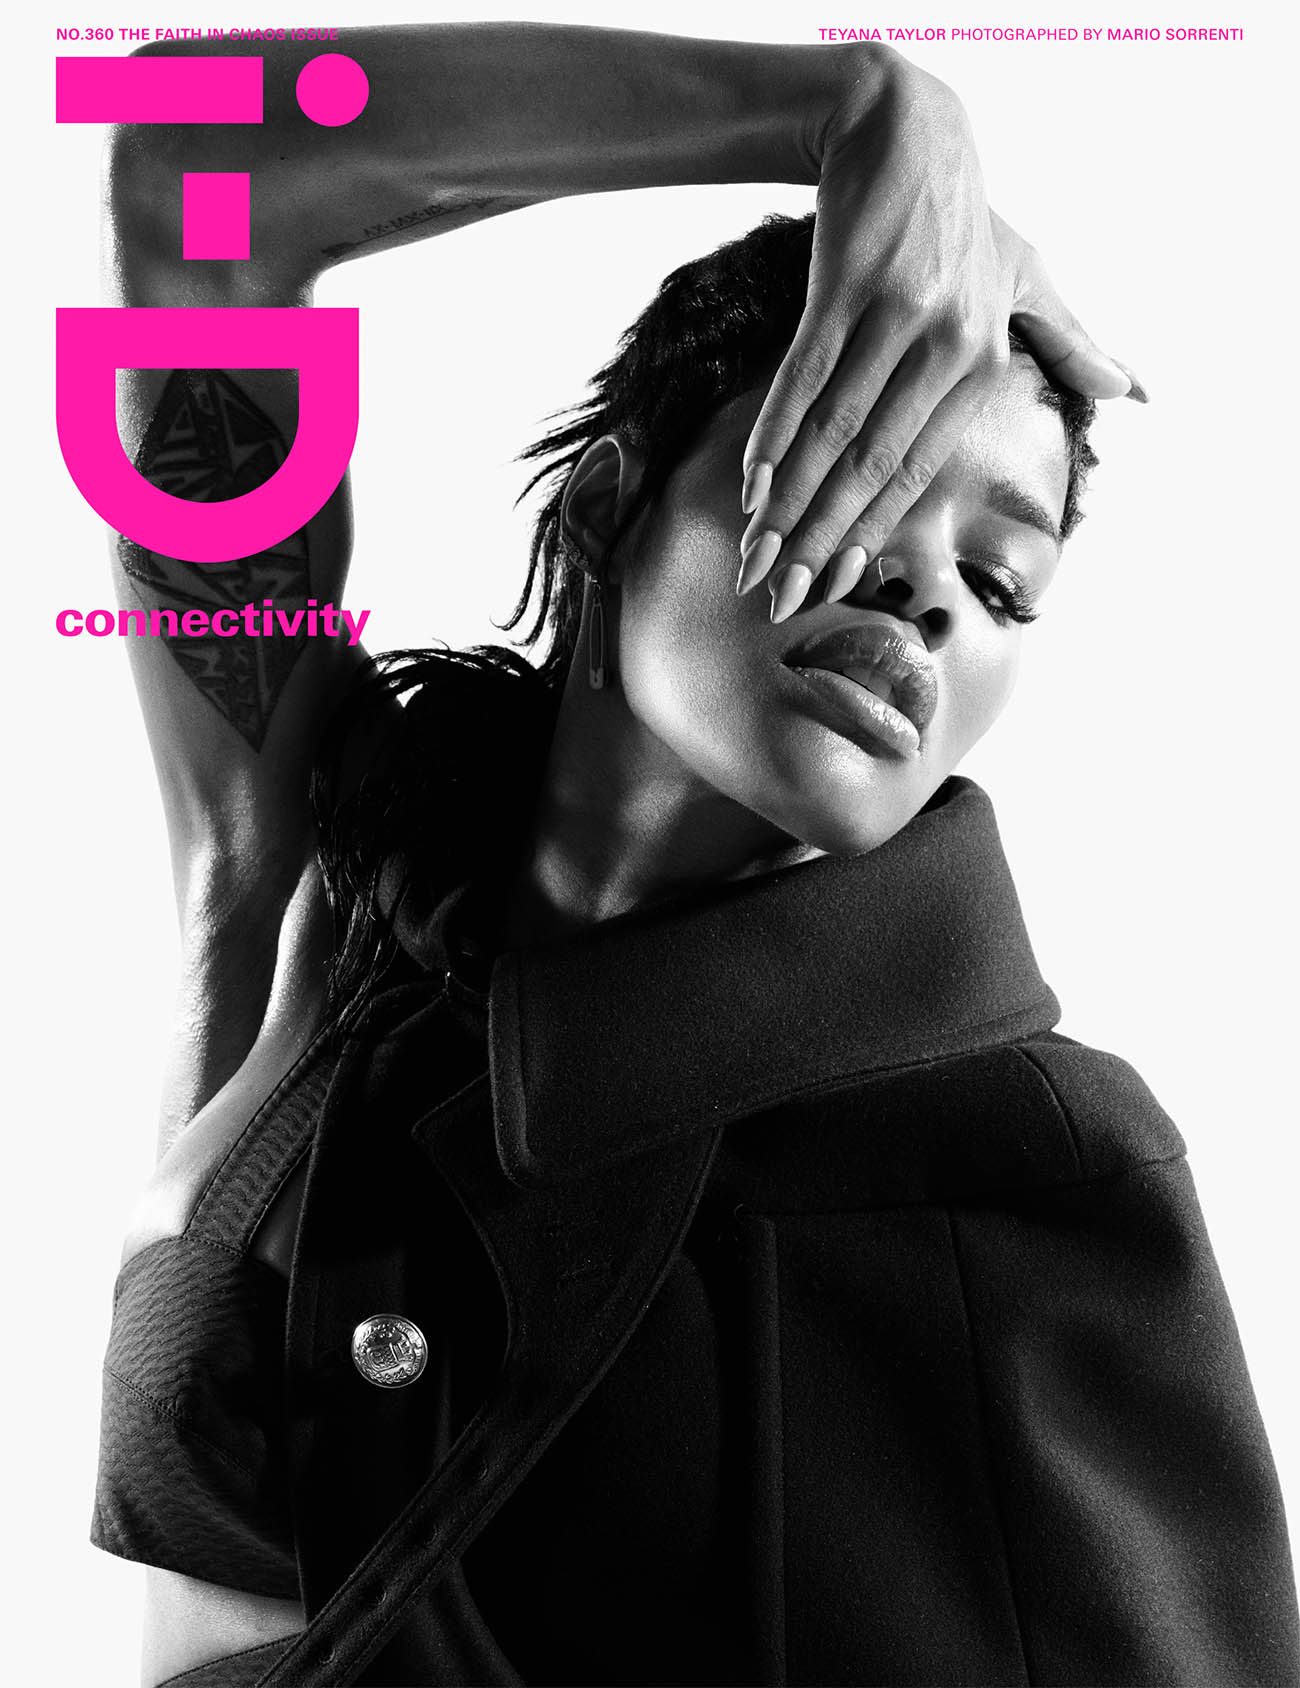 Teyana Taylor covers i-D Magazine Summer 2020 by Mario Sorrenti